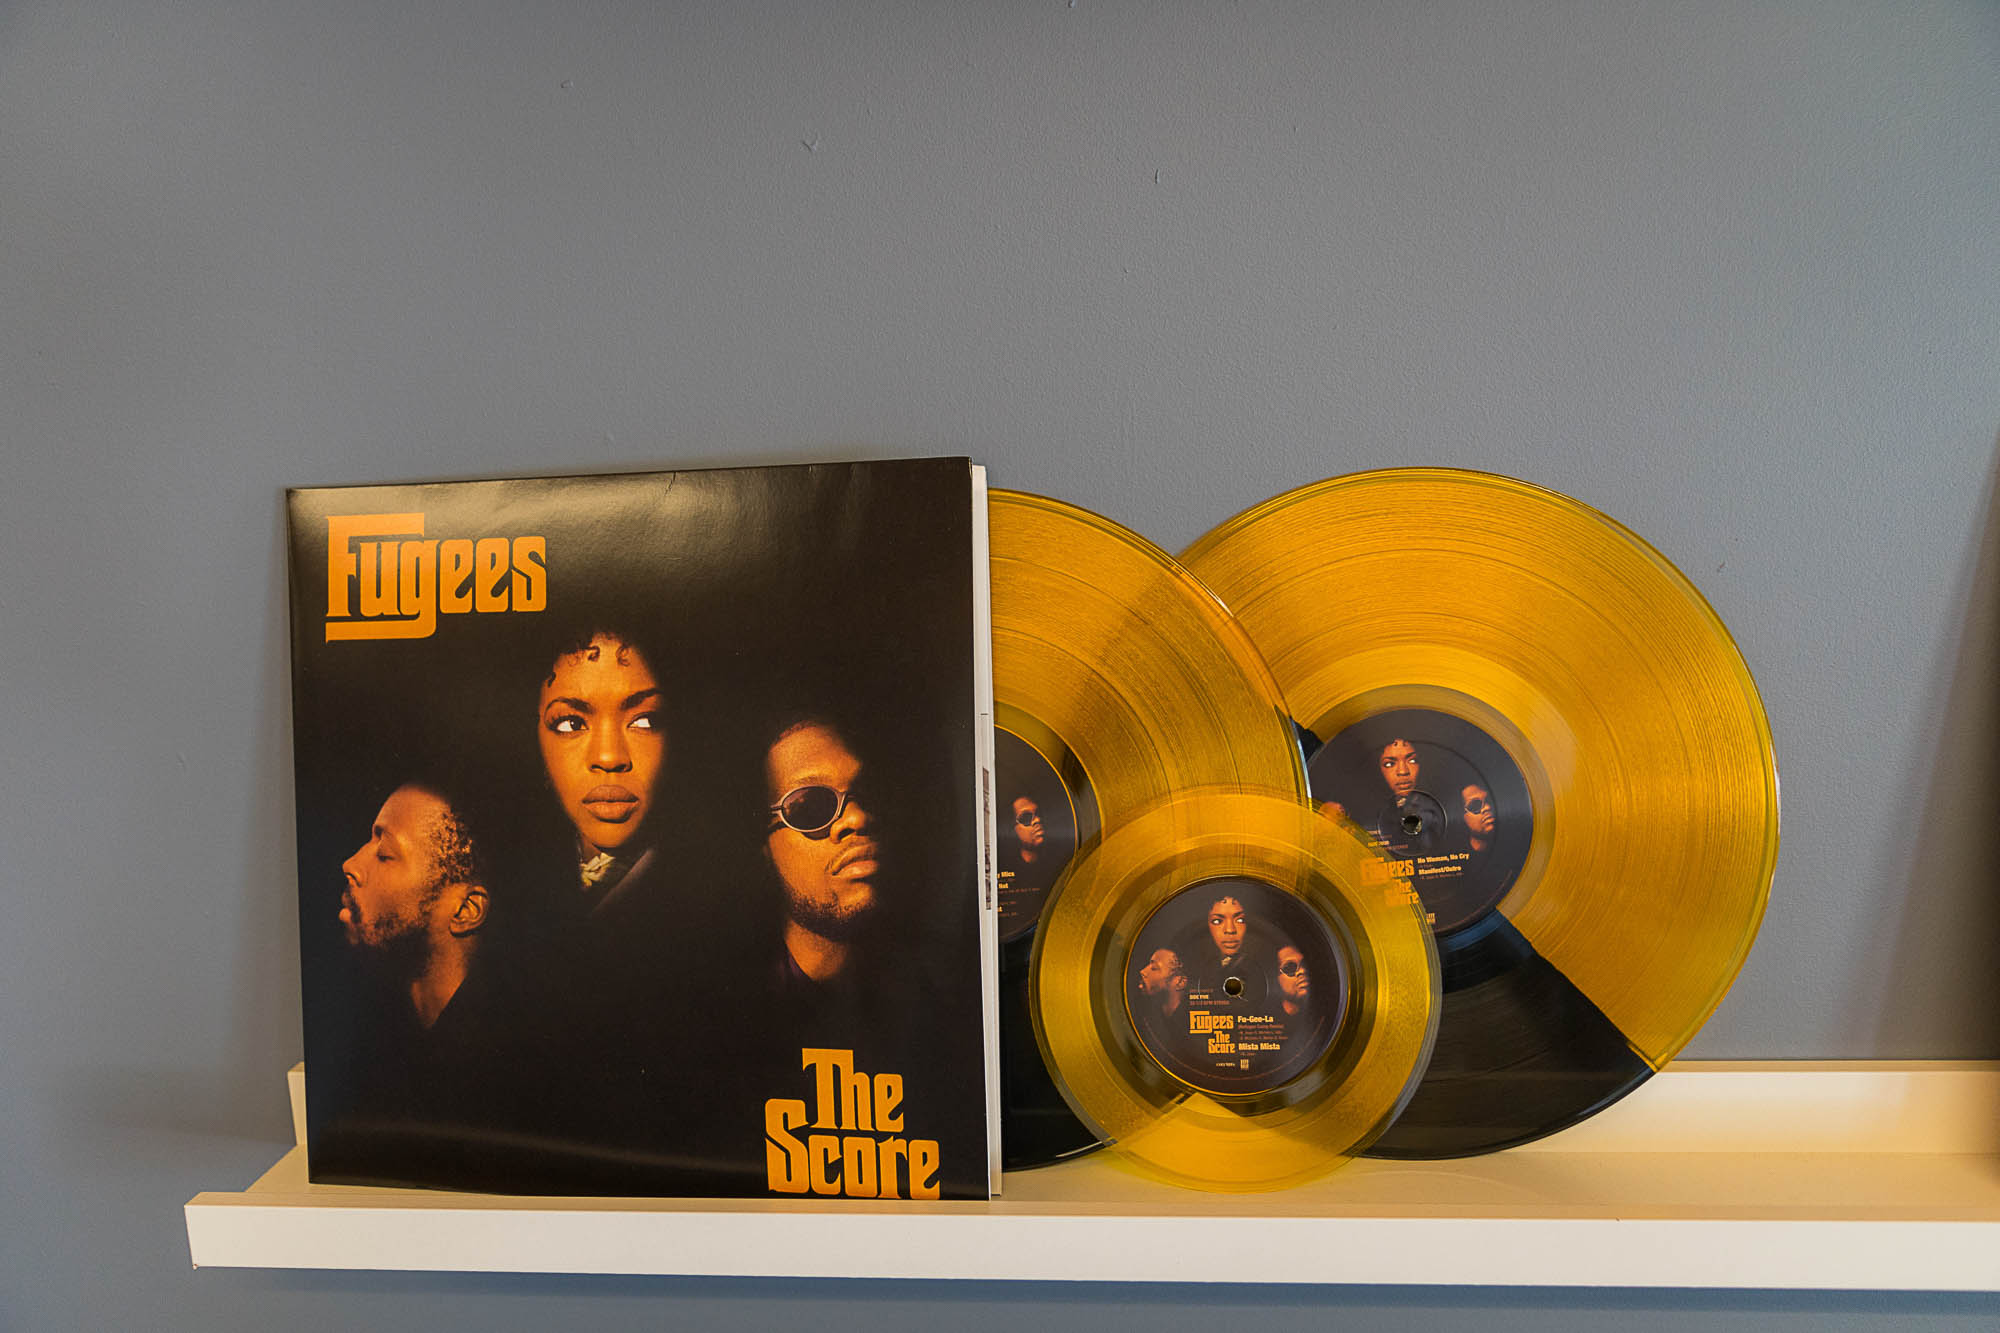 The Fugees album at Vinyl Me, Please in Denver.